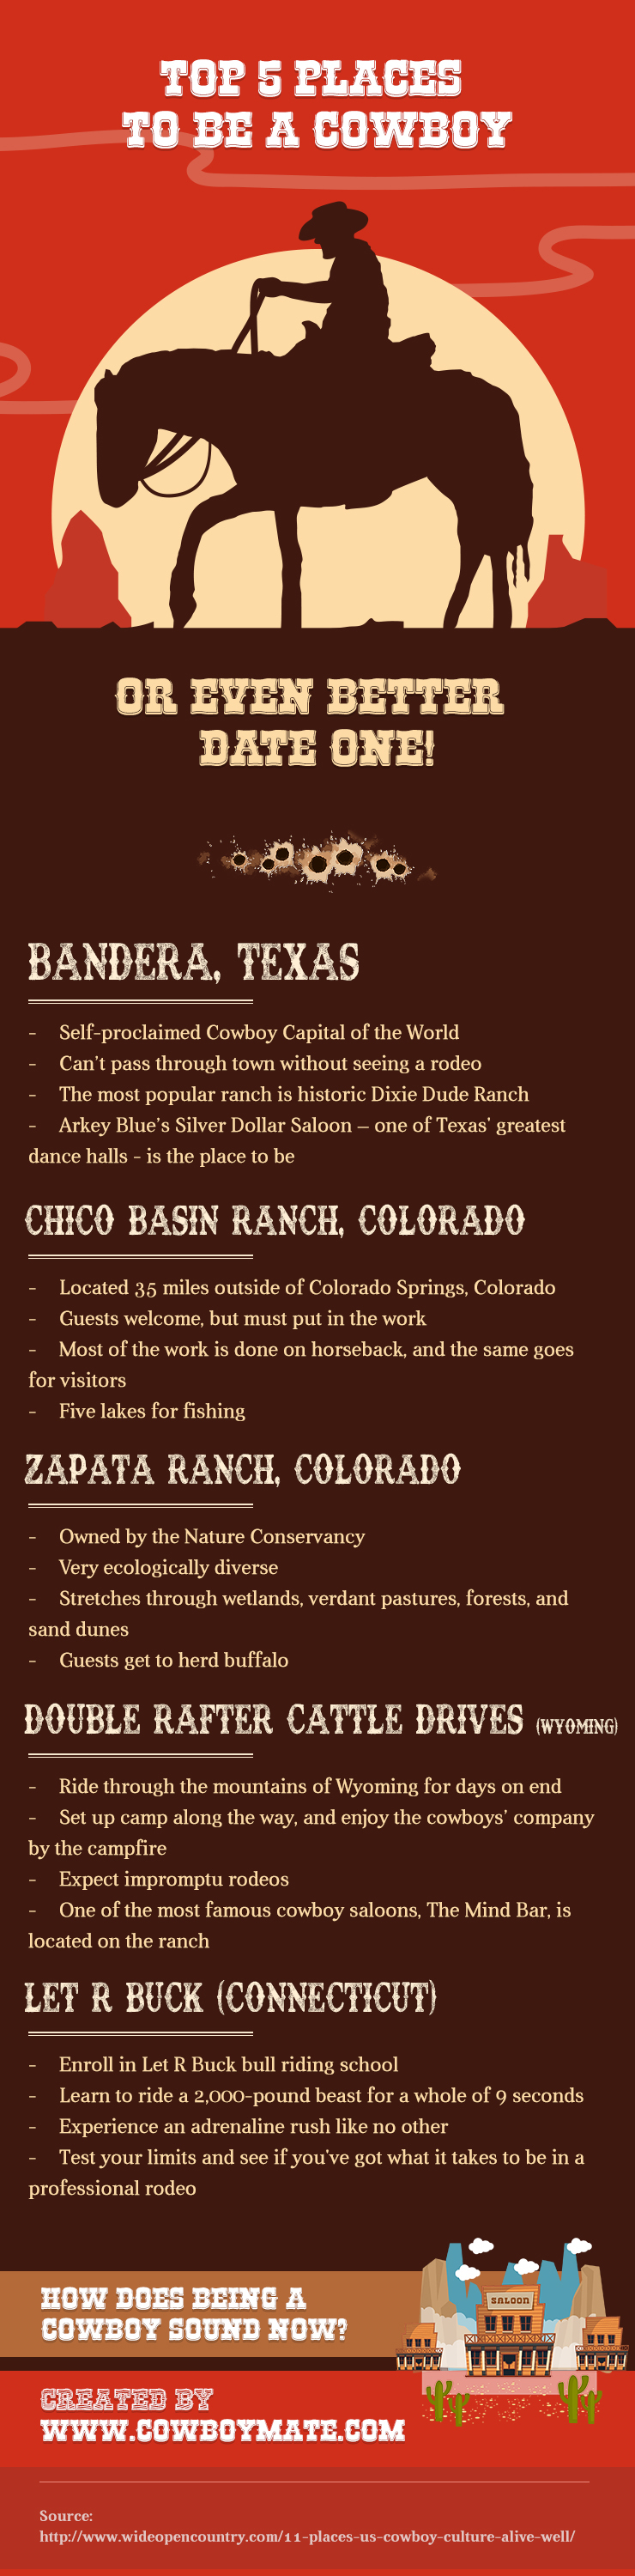 Top 5 Places to be a Cowboy